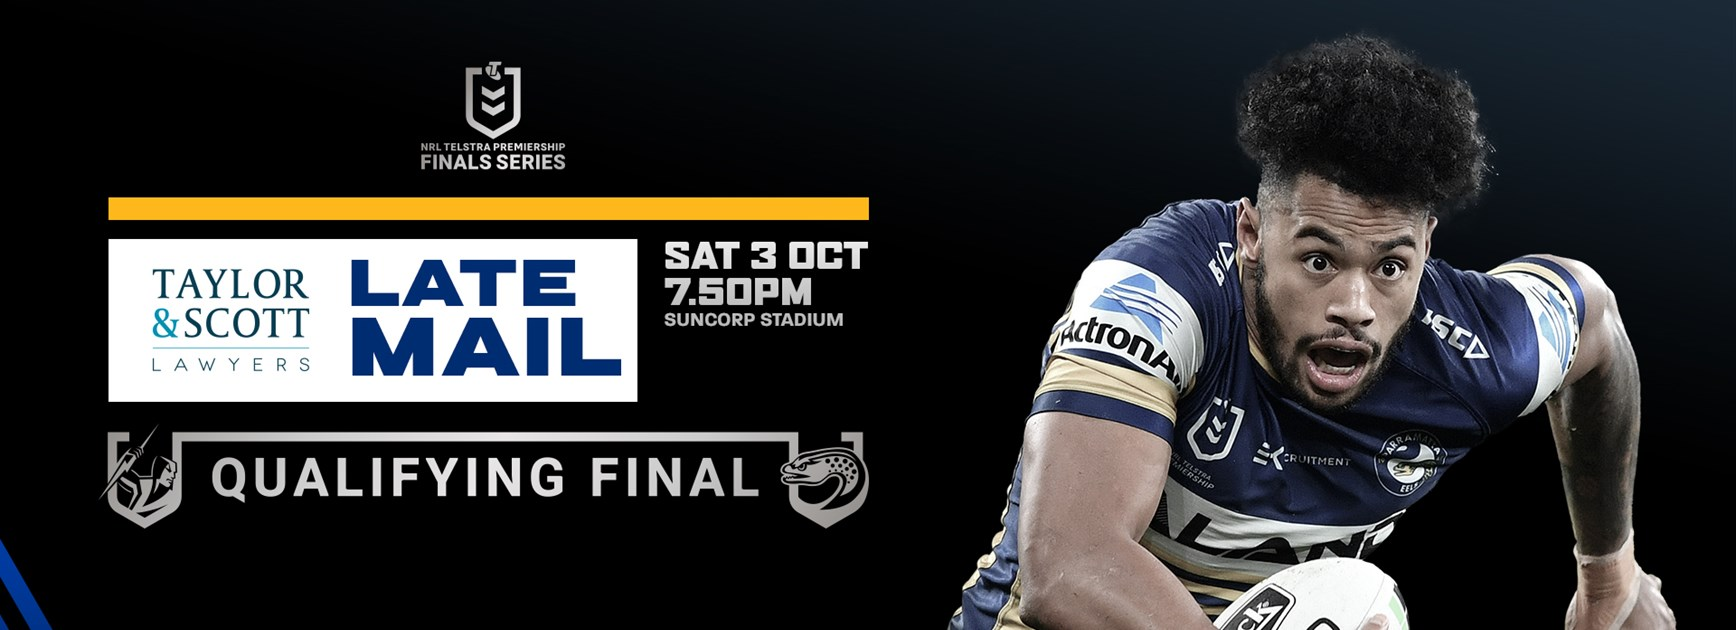 Late Mail: Storm v Eels, Qualifying Final